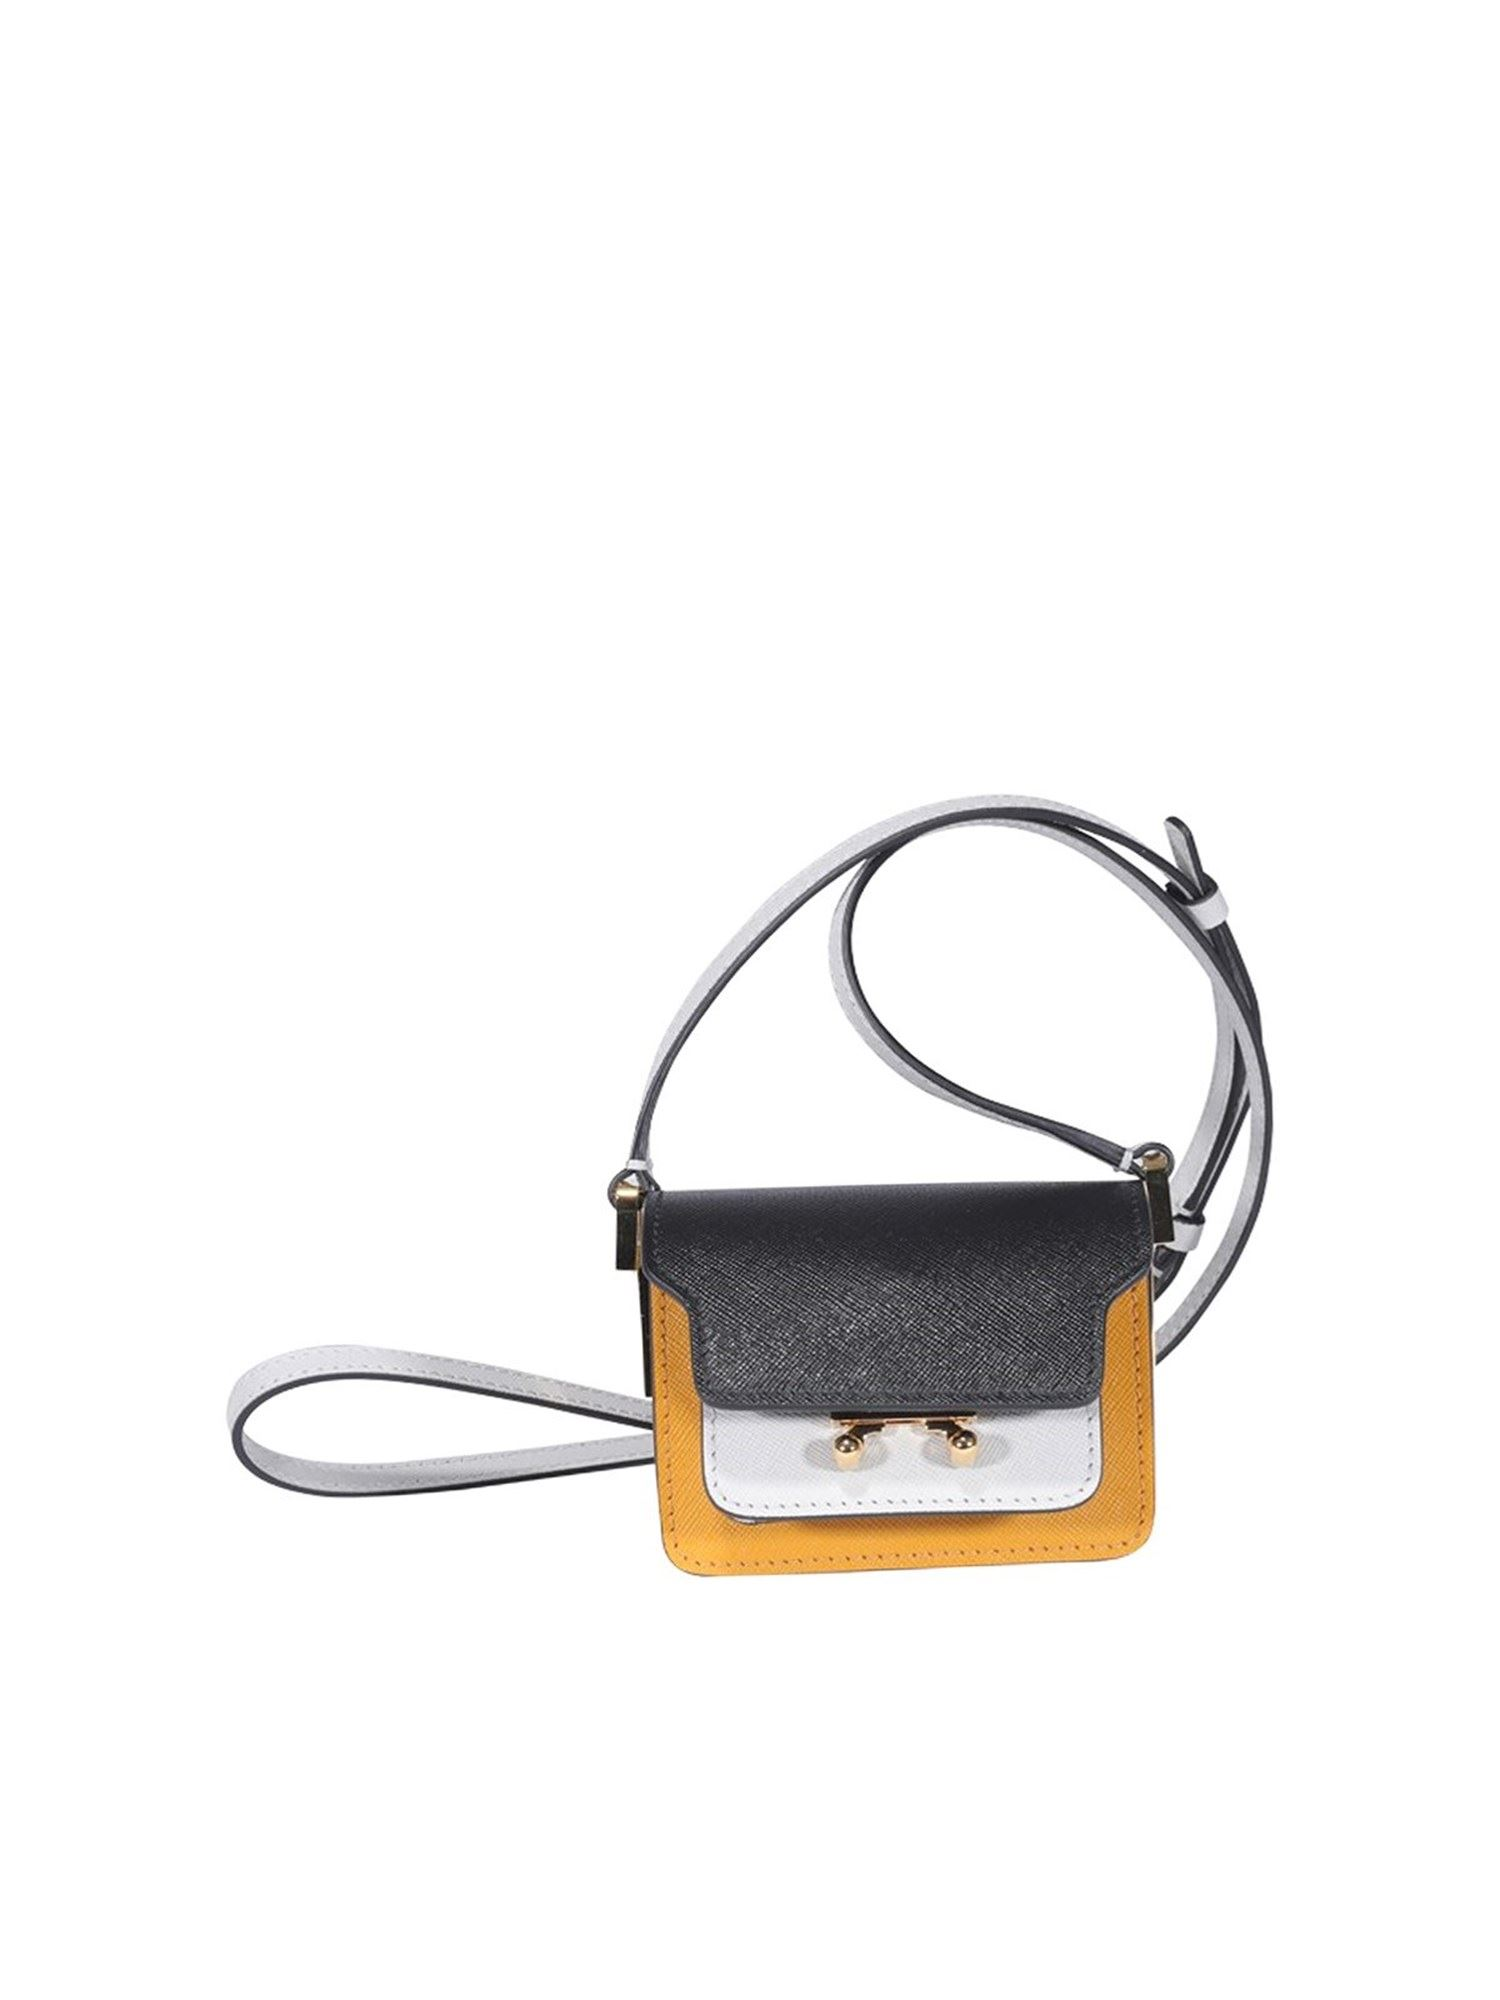 Marni Leathers TRUNK MINI BAG IN BLUE YELLOW AND WHITE